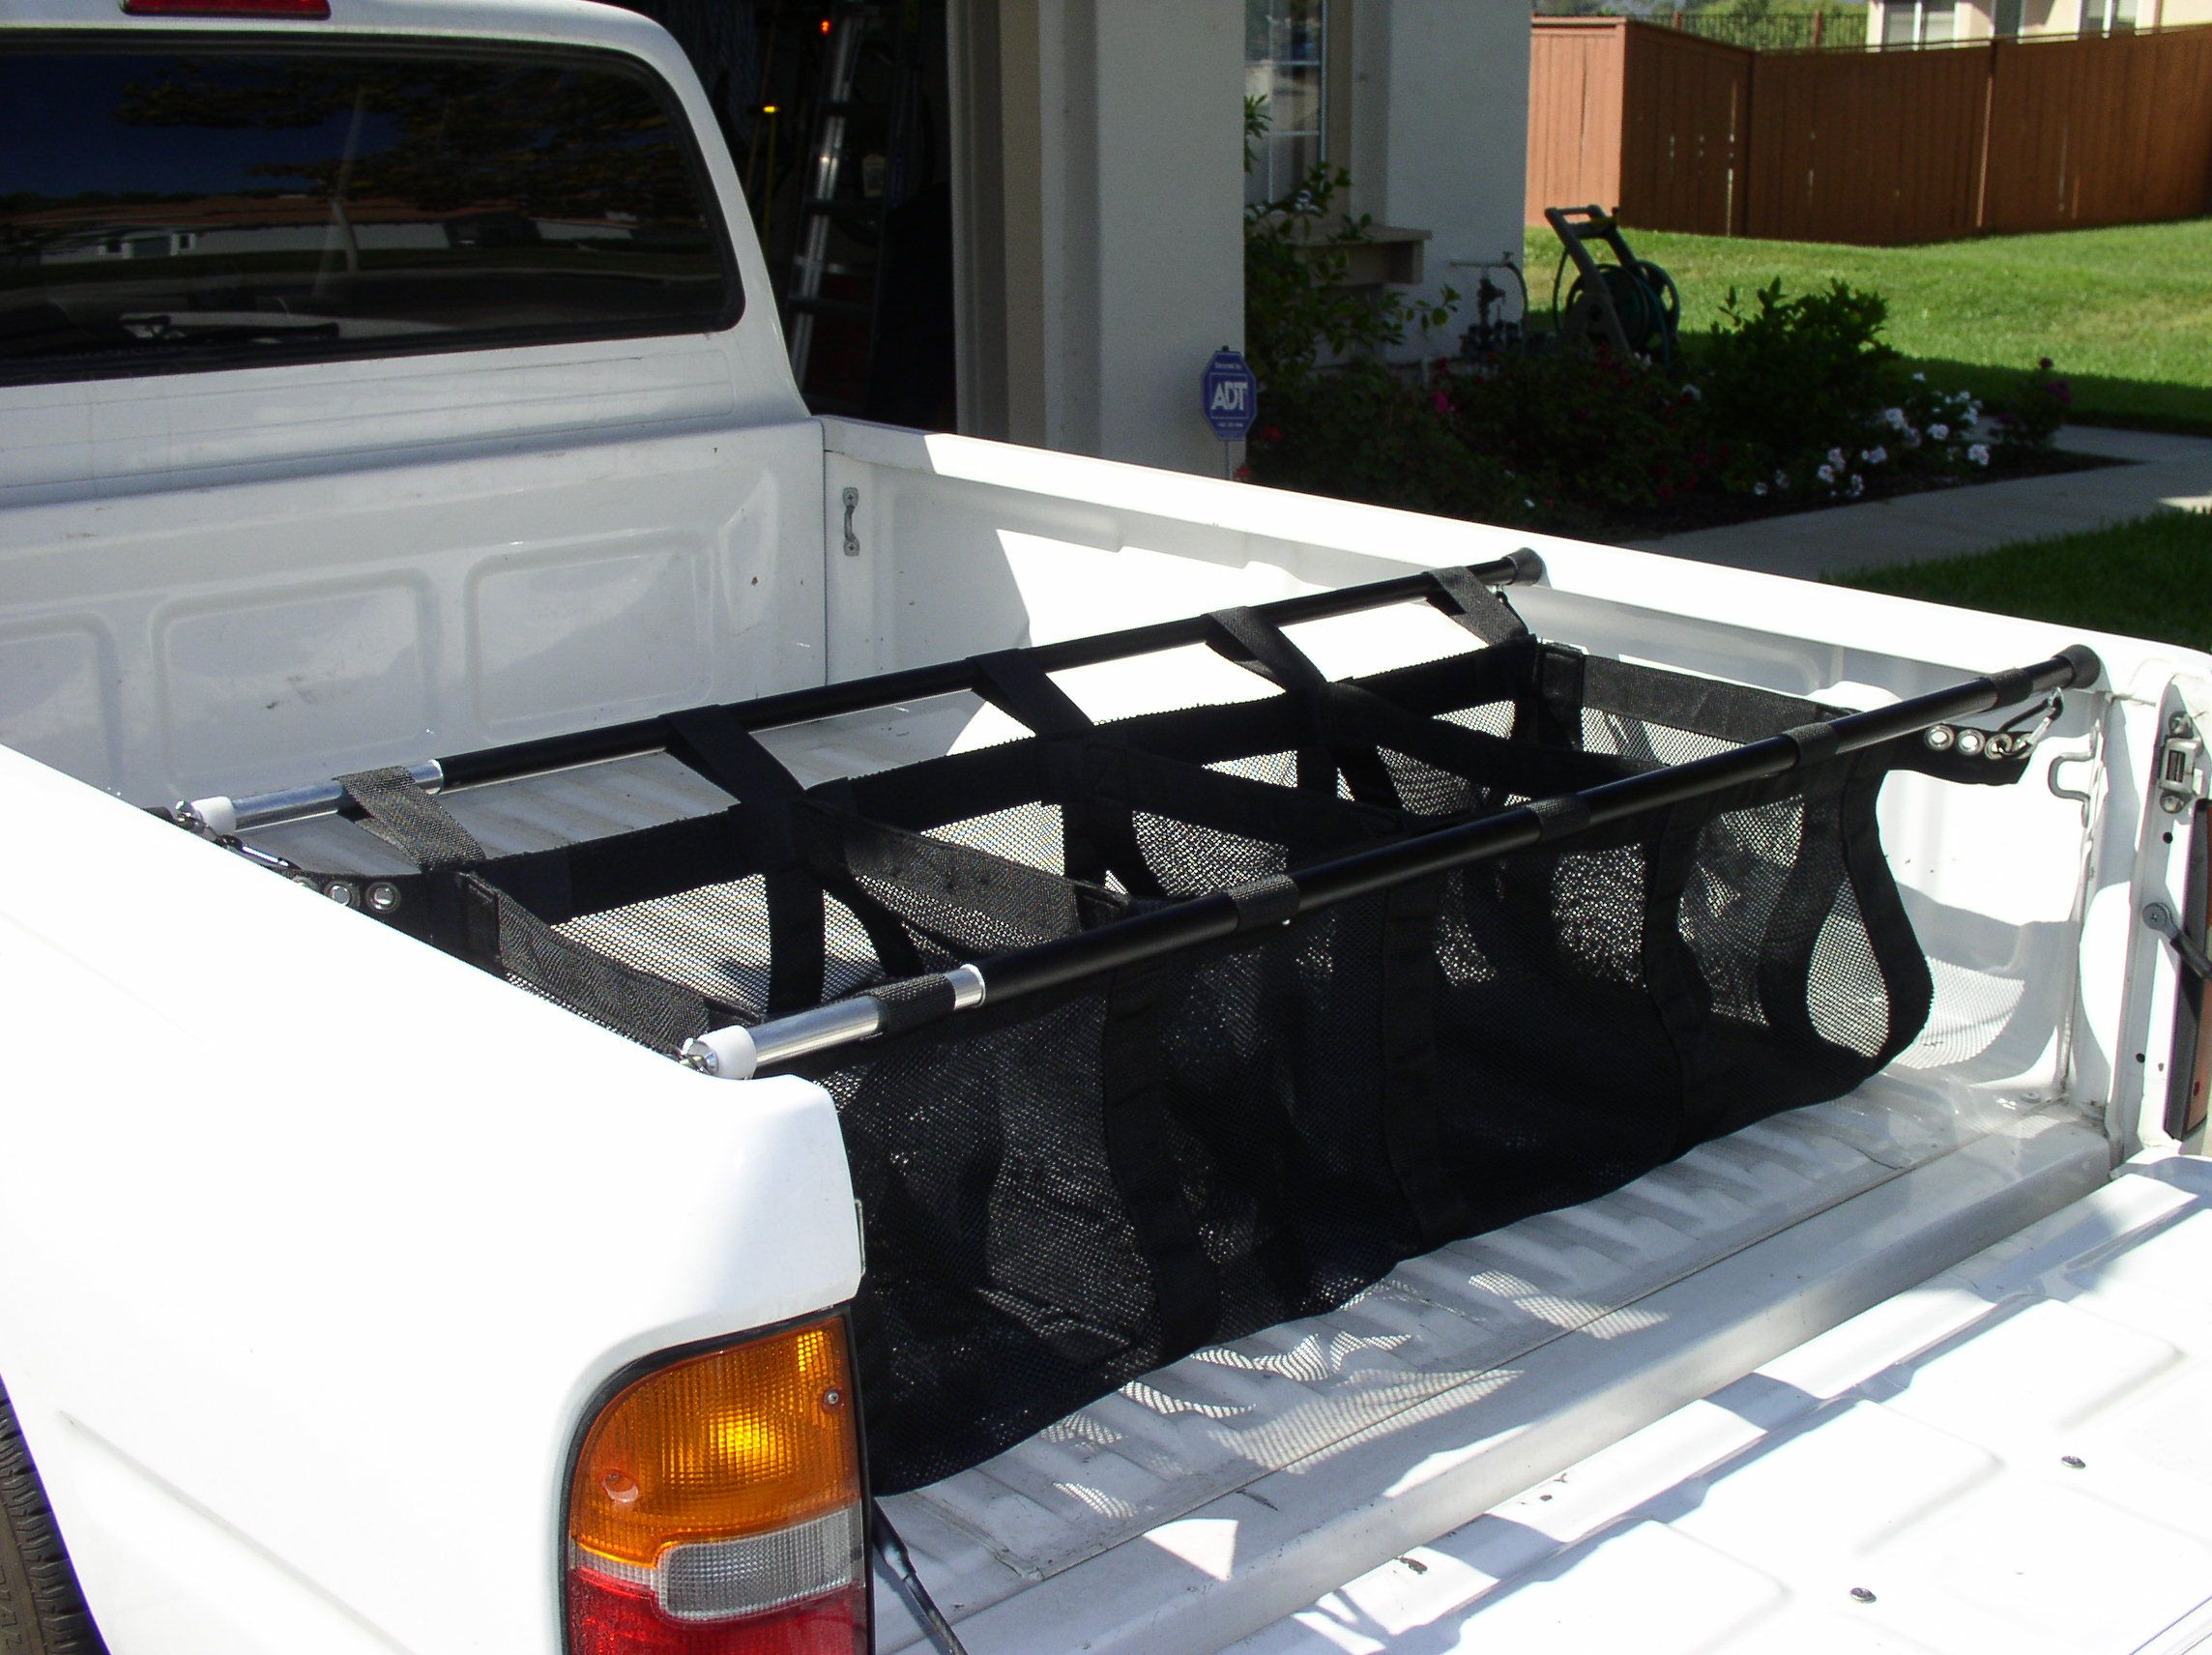 organized pick up truck for family cargocatch pickup truck bed